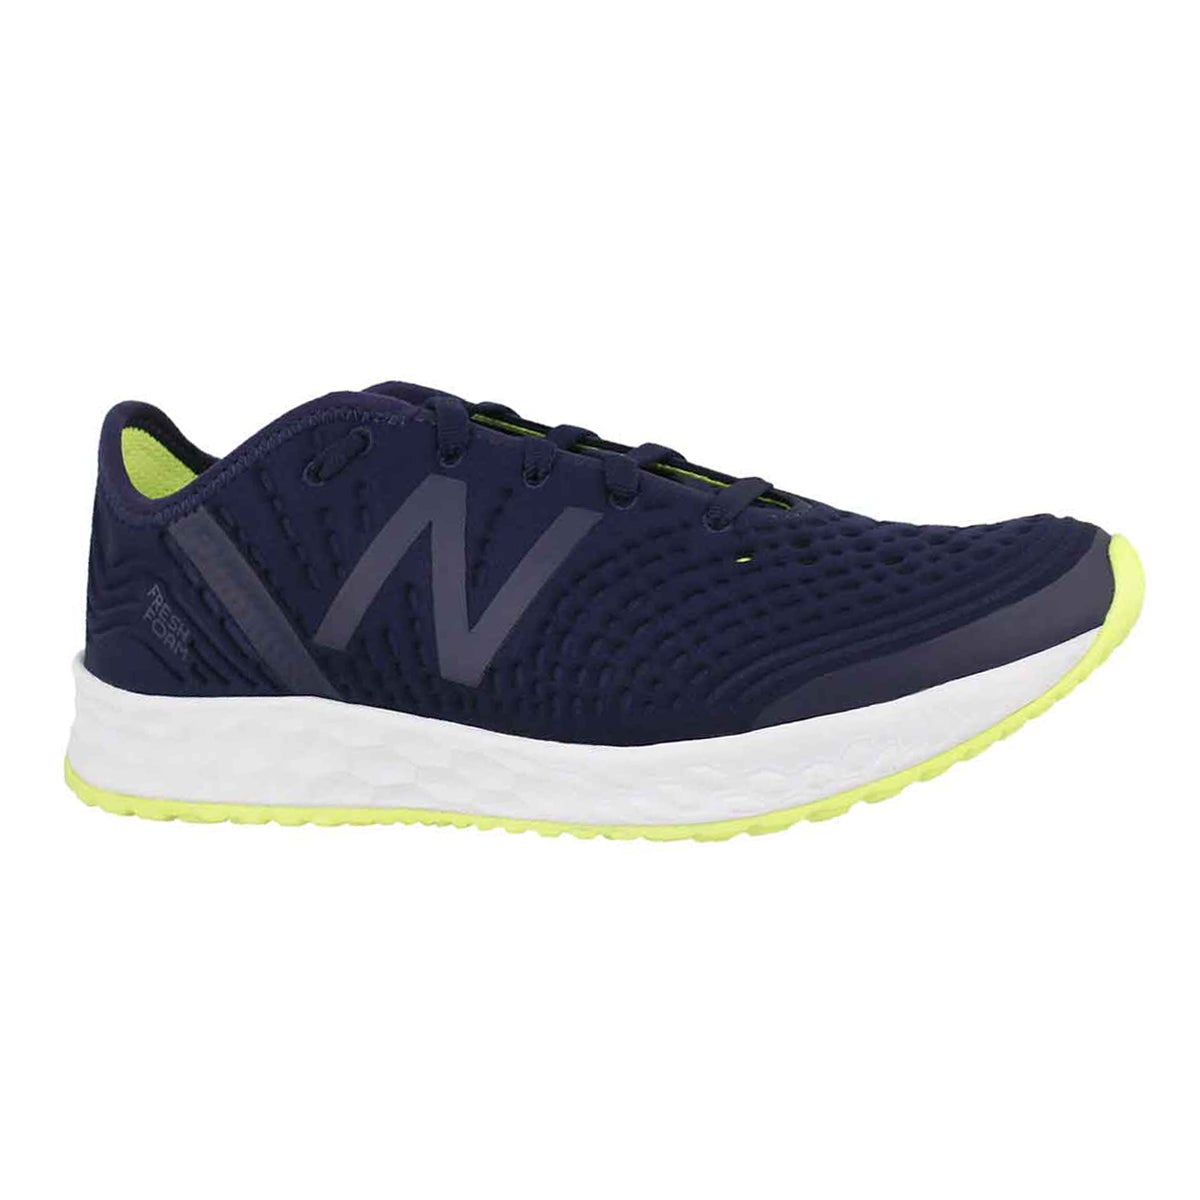 Women's CRUSH pigmnt/solar lace up sneakers